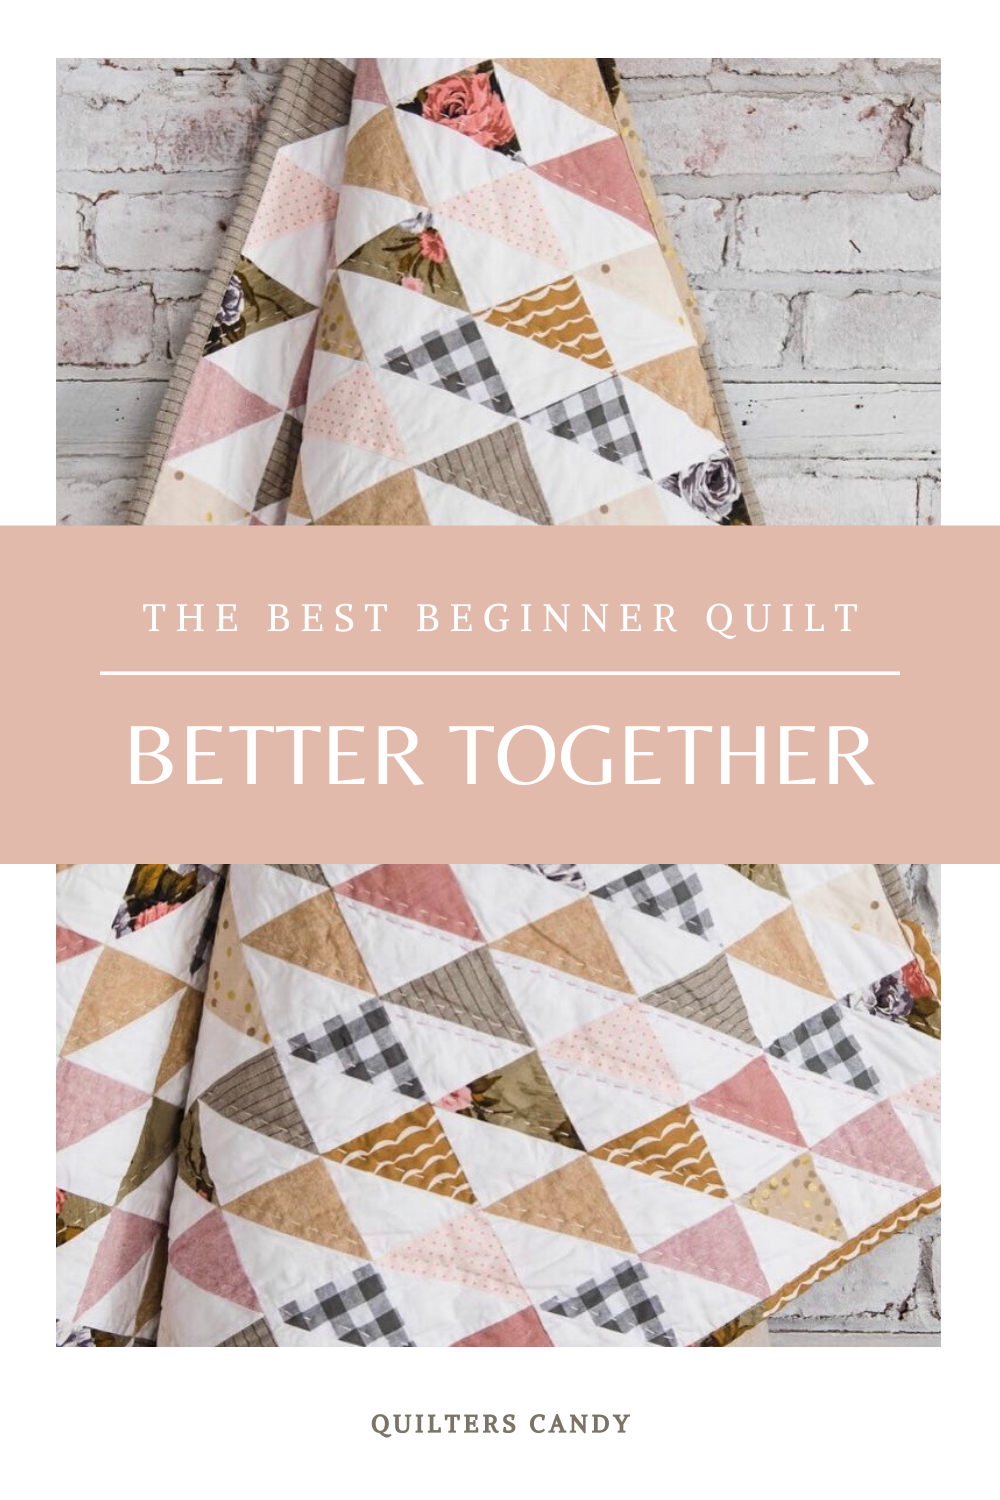 Best Beginner Quilt Quilters Candy